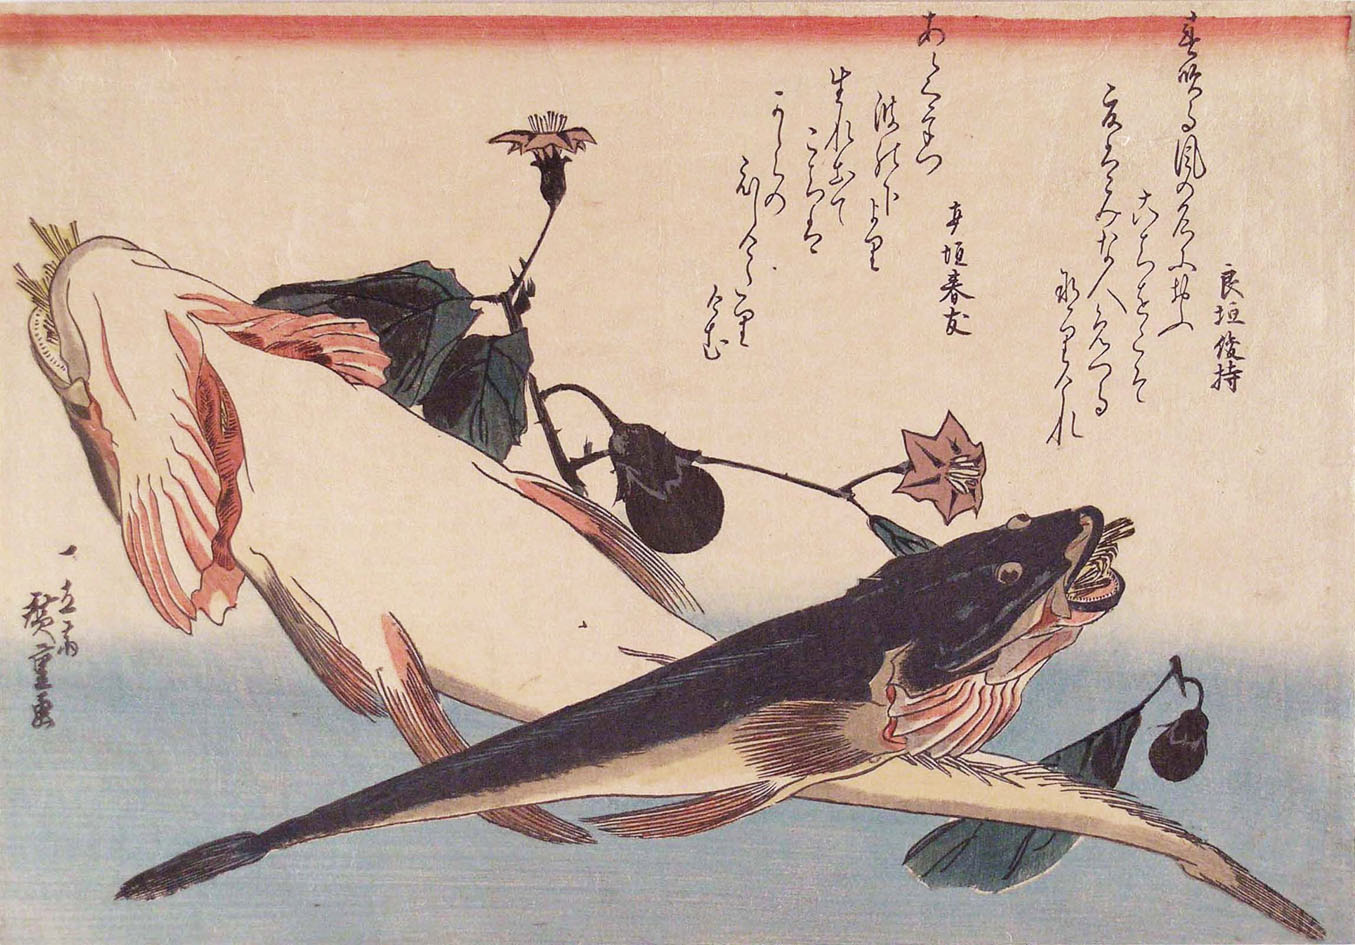 hiroshige bartail flatheads and a flowering egg plant